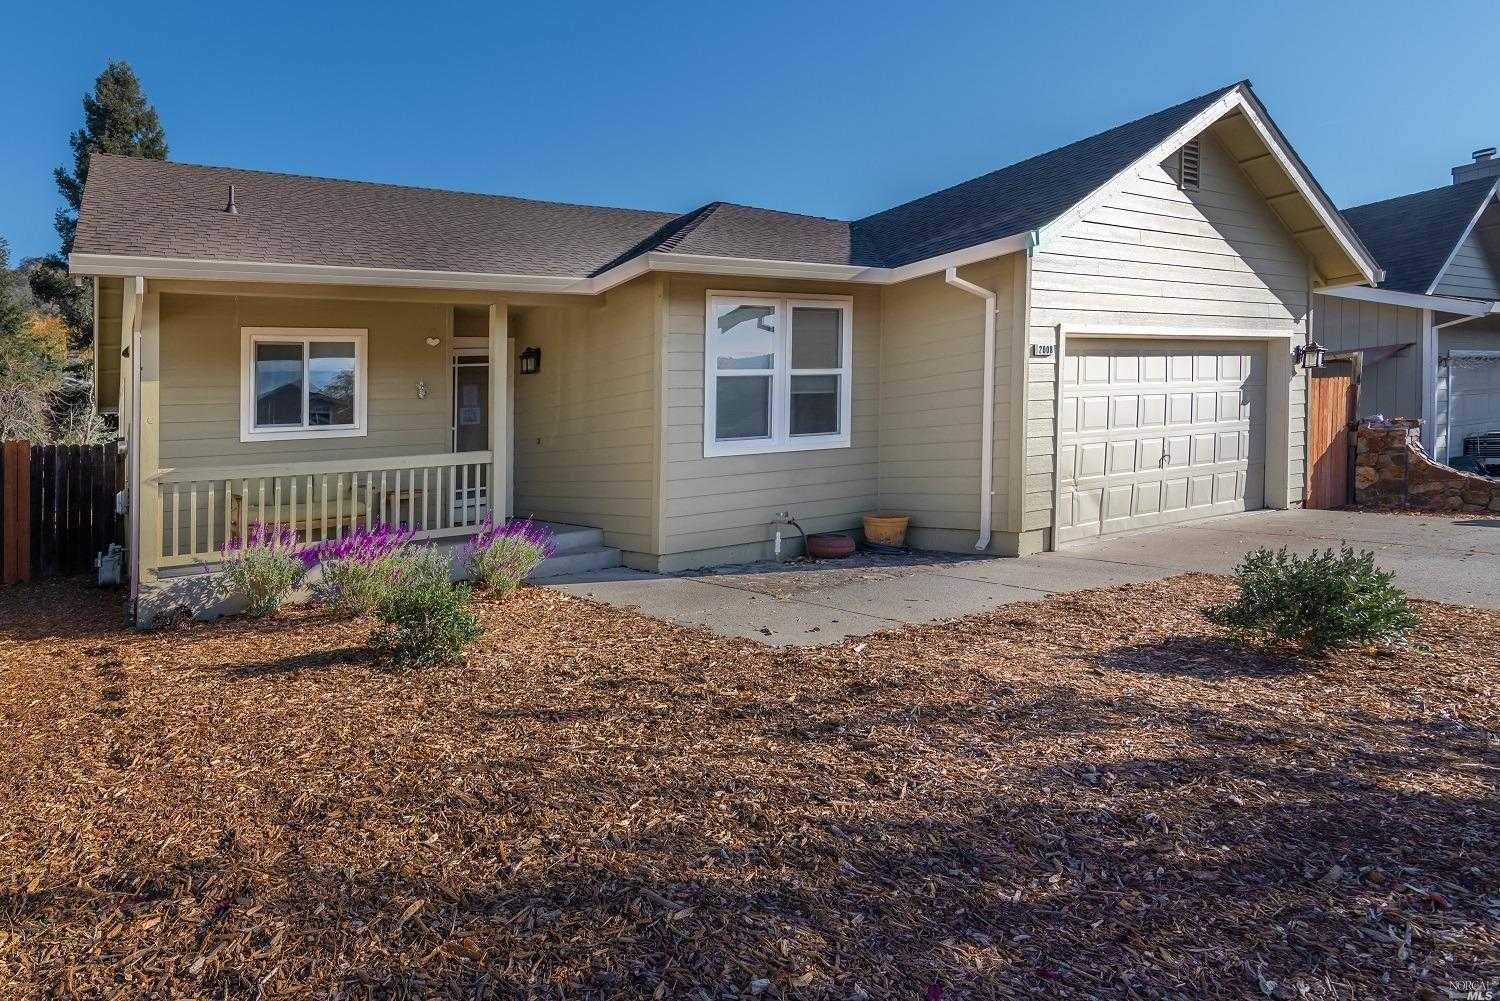 $729,000 - 3Br/2Ba -  for Sale in Palisades, Calistoga